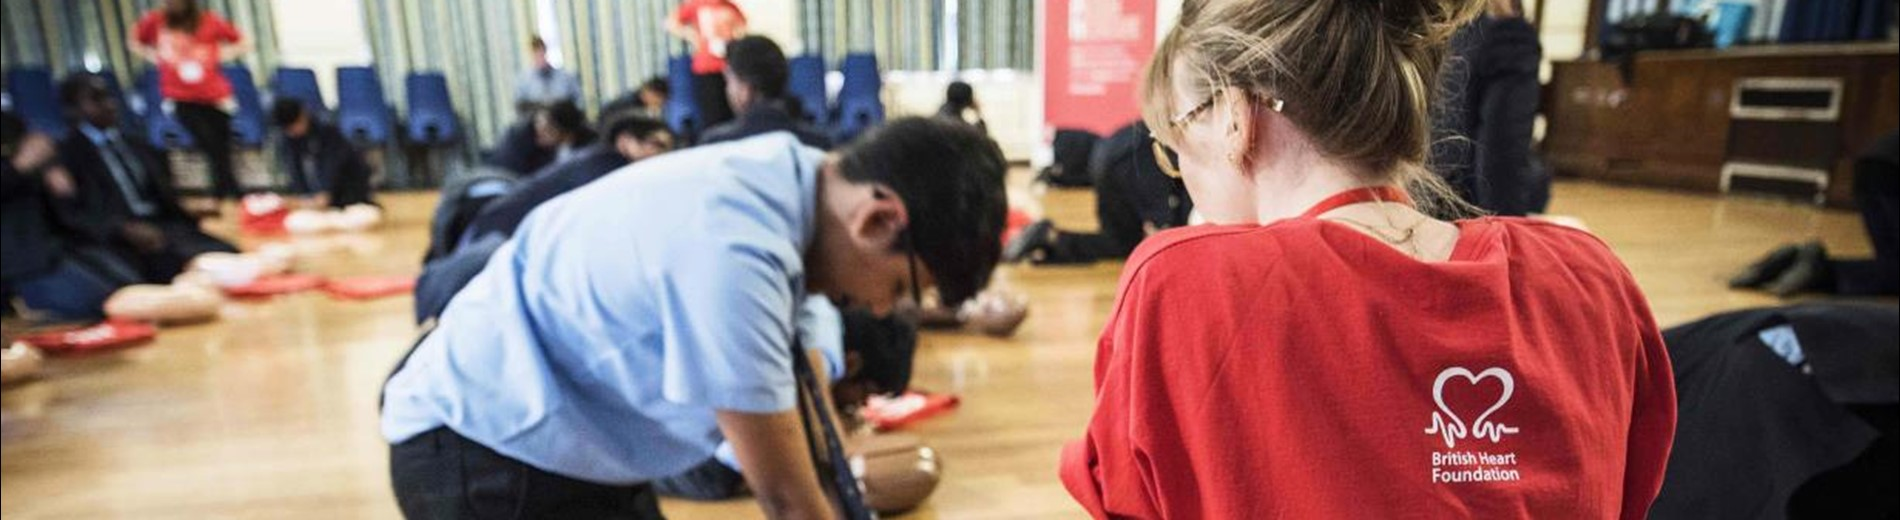 Government confirms plans to teach CPR in schools